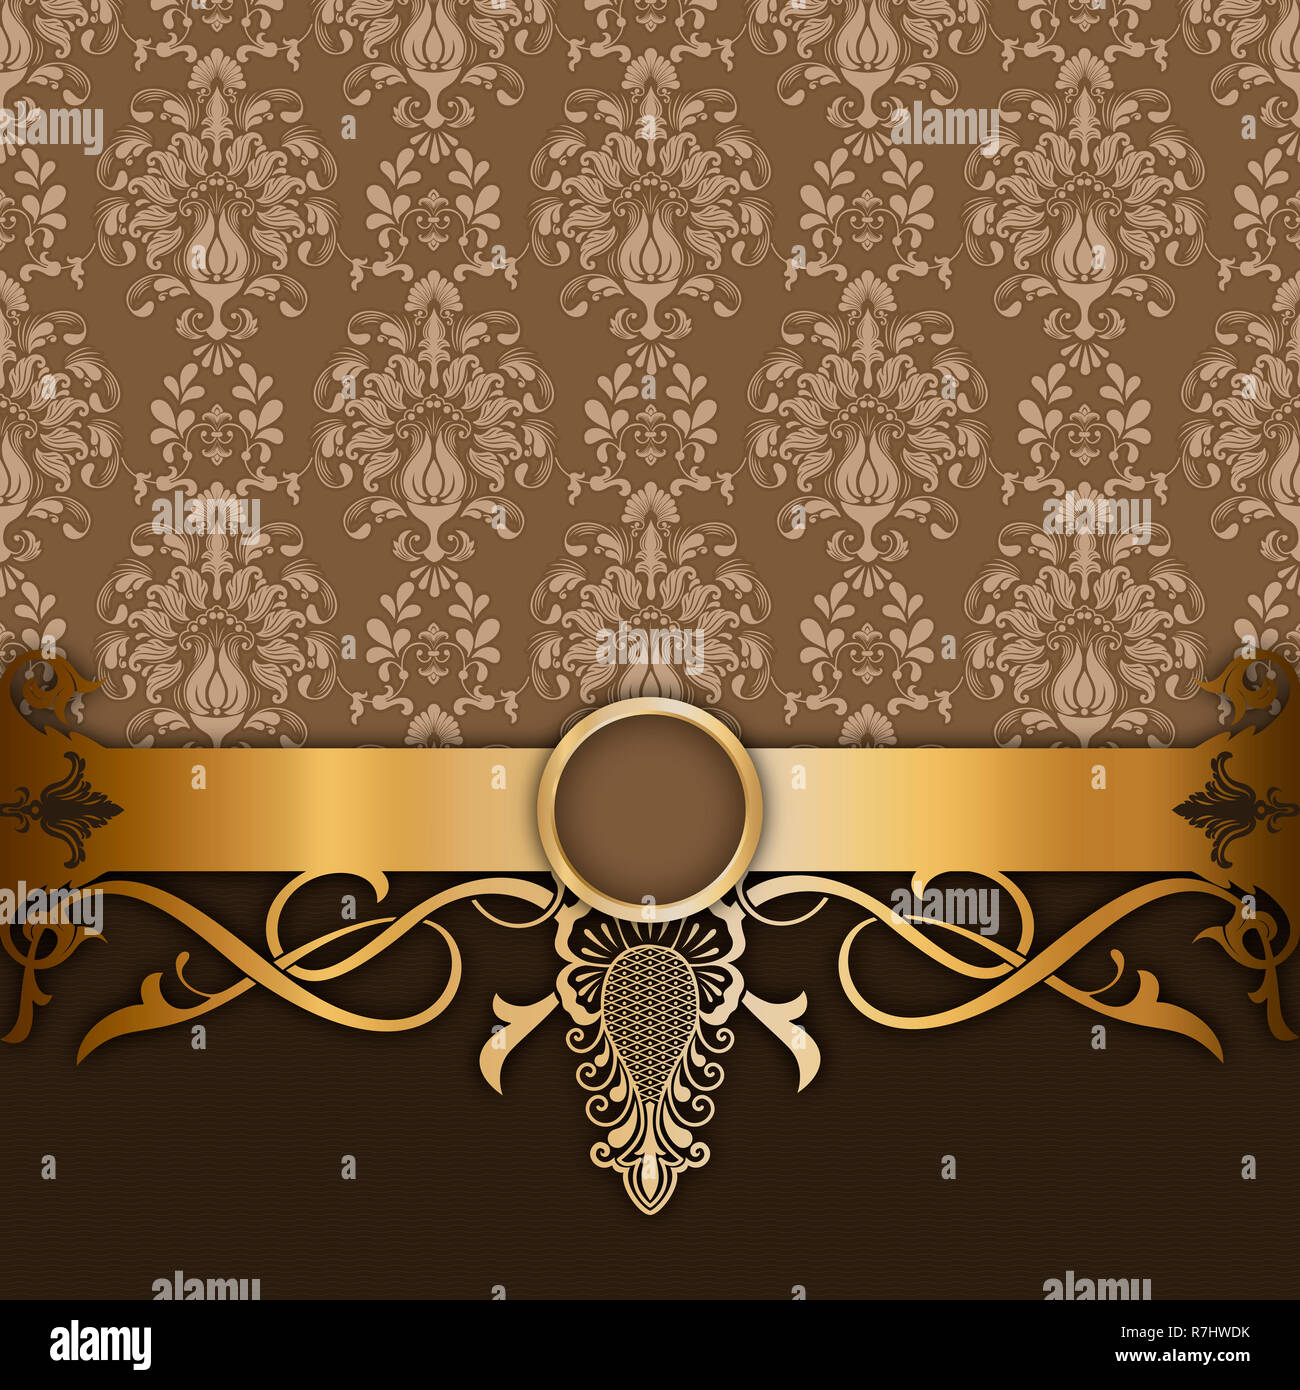 Vintage Background With Decorative Border And Floral Old Fashioned Patterns Vintage Invitation Card Design Stock Photo Alamy